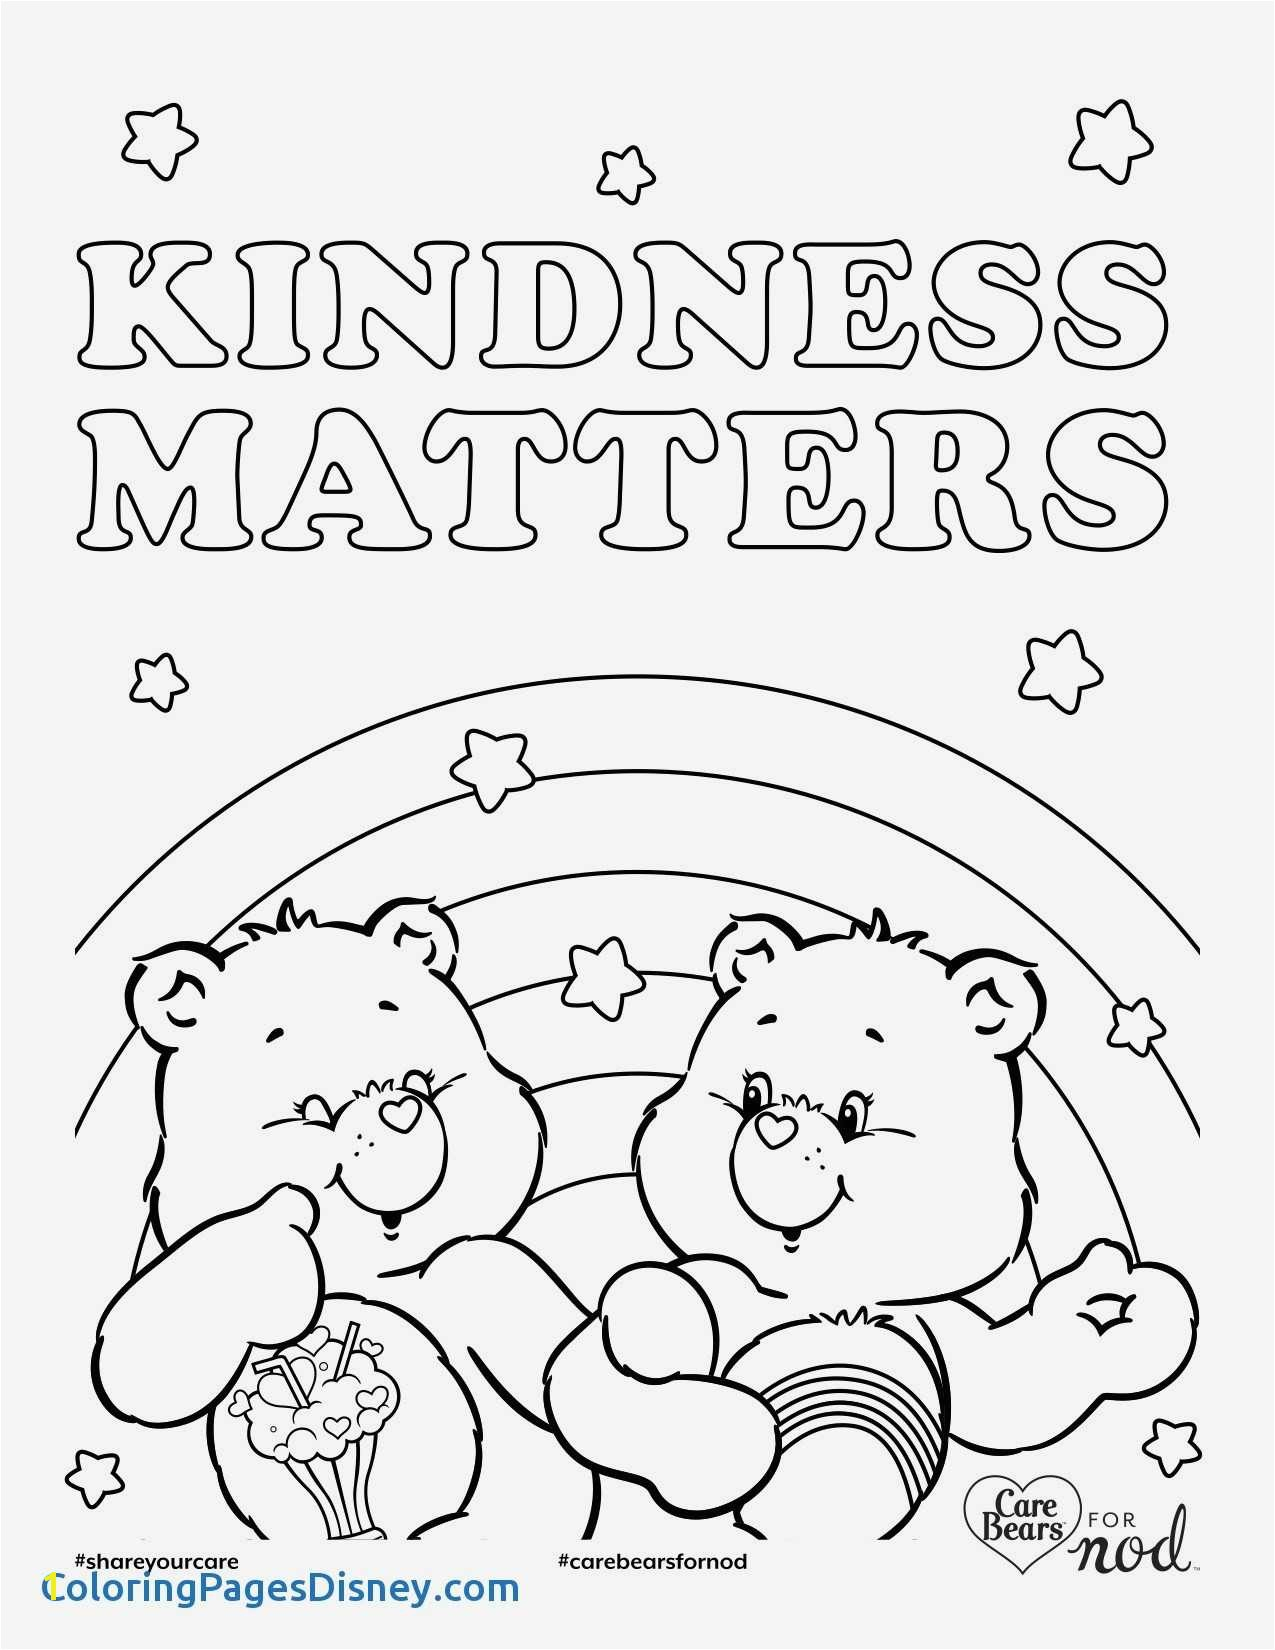 Free Disney Coloring Pages Awesome Printable Coloring Book Disney Luxury Fitnesscoloring Pages 0d